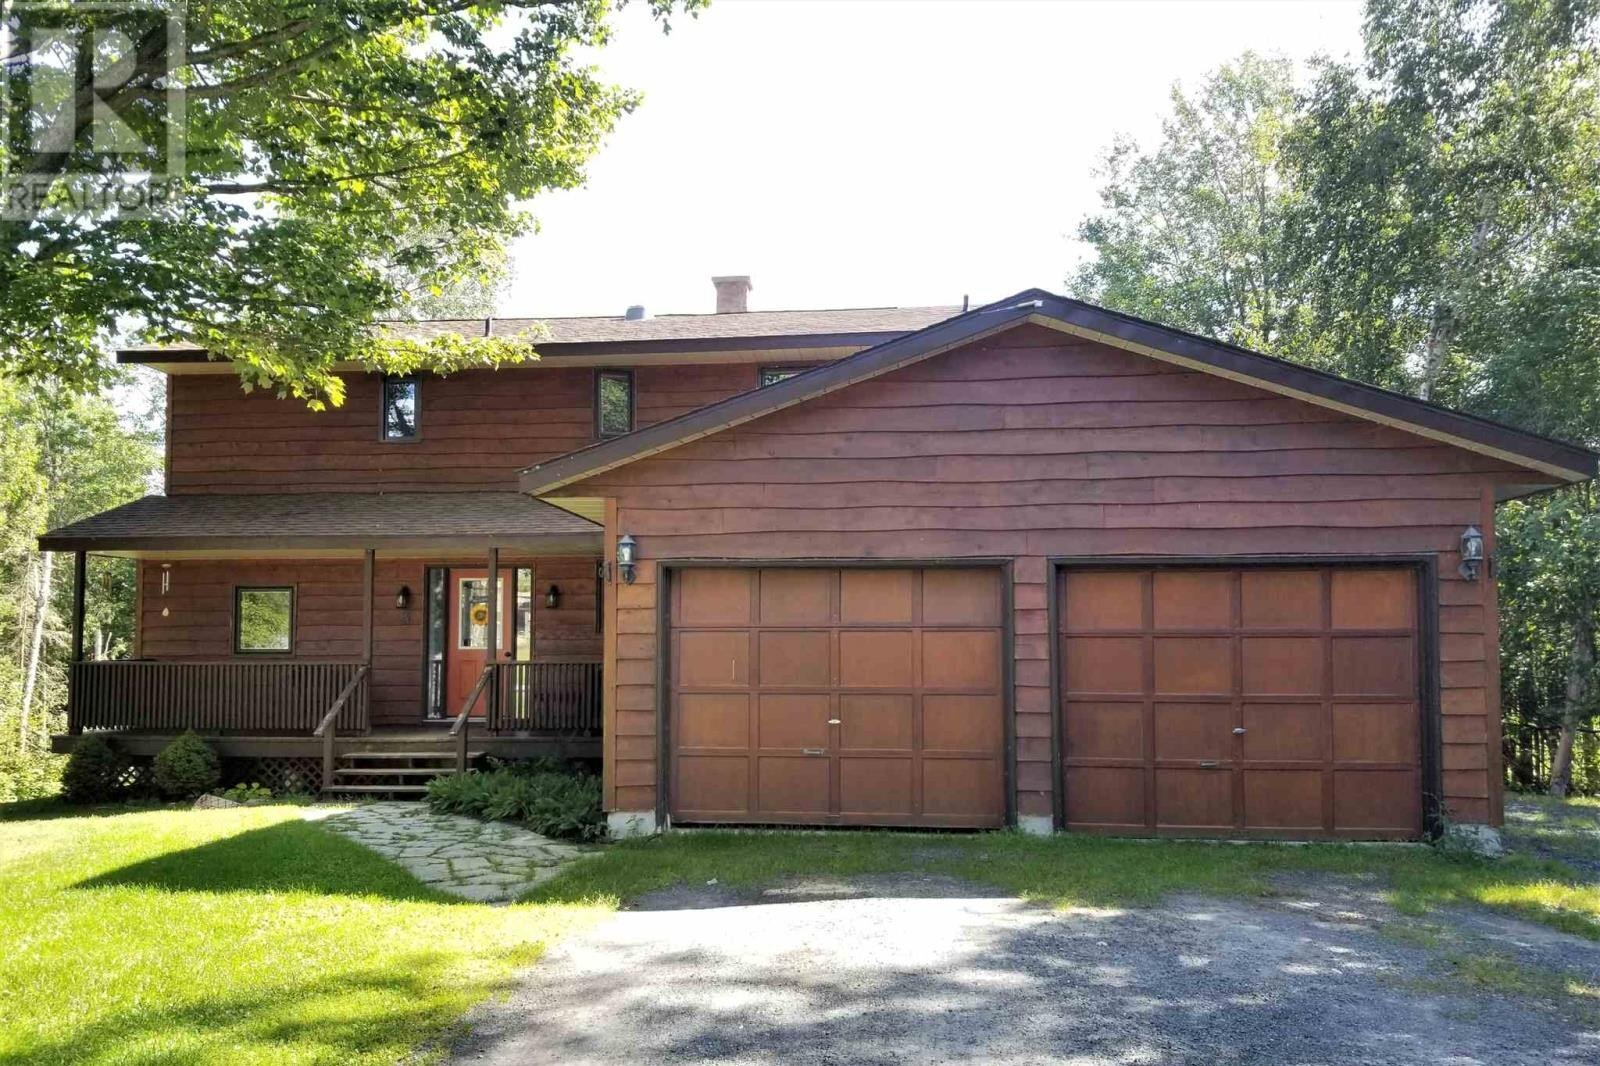 House for sale at 3 Beech Dr Blind River Ontario - MLS: SM129828